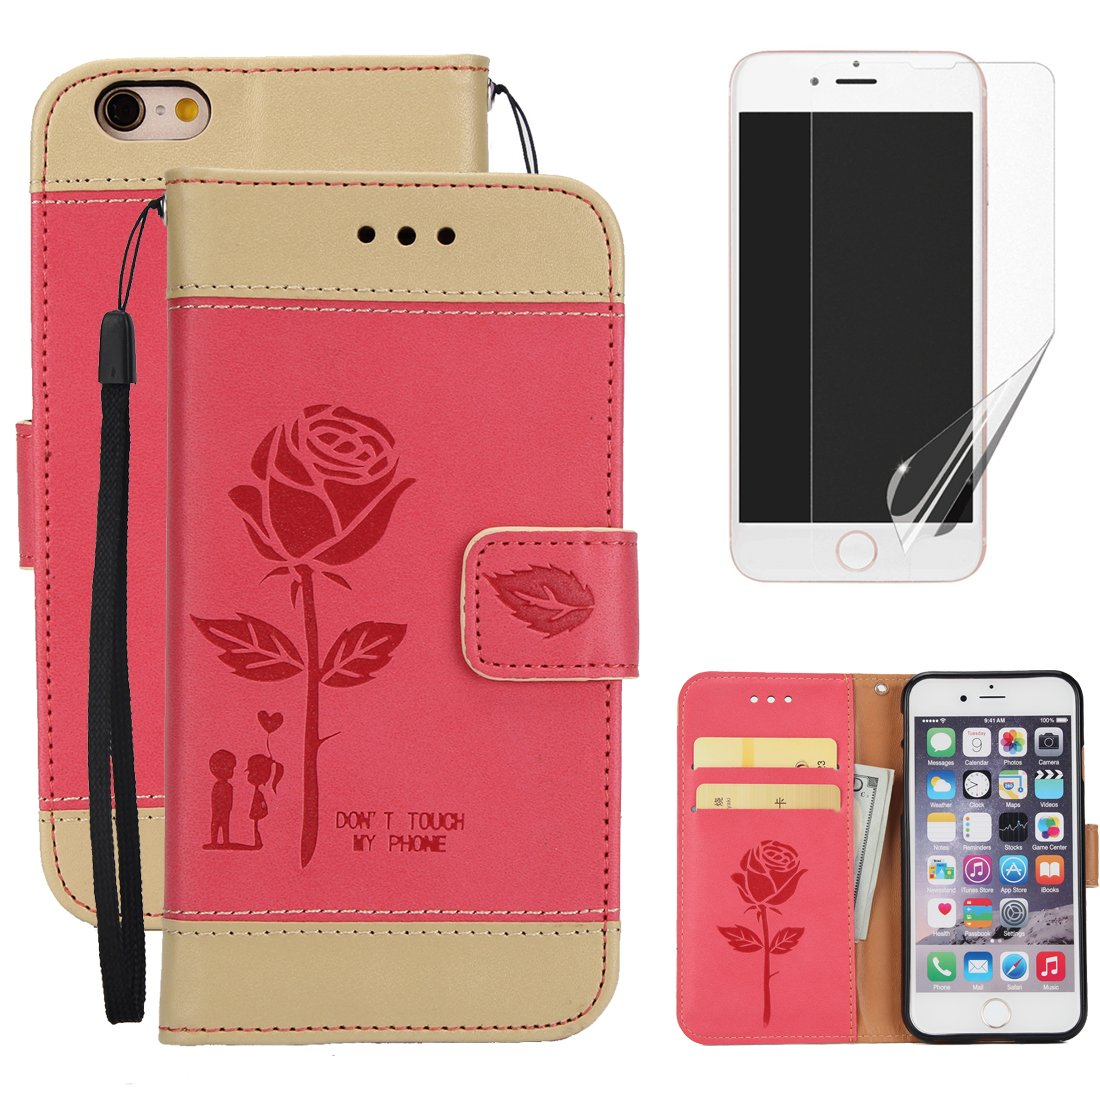 For iphone 7 Plus (5.5inch) Wallet Case with Screen Protector , OYIME [Lovers Under Rose] Color Stitching Design Don't Touch My Phone Leather Kickstand Magnetic Holster with Card Holder Full Body Protective Flip Cover with Wrist Lanyard - White